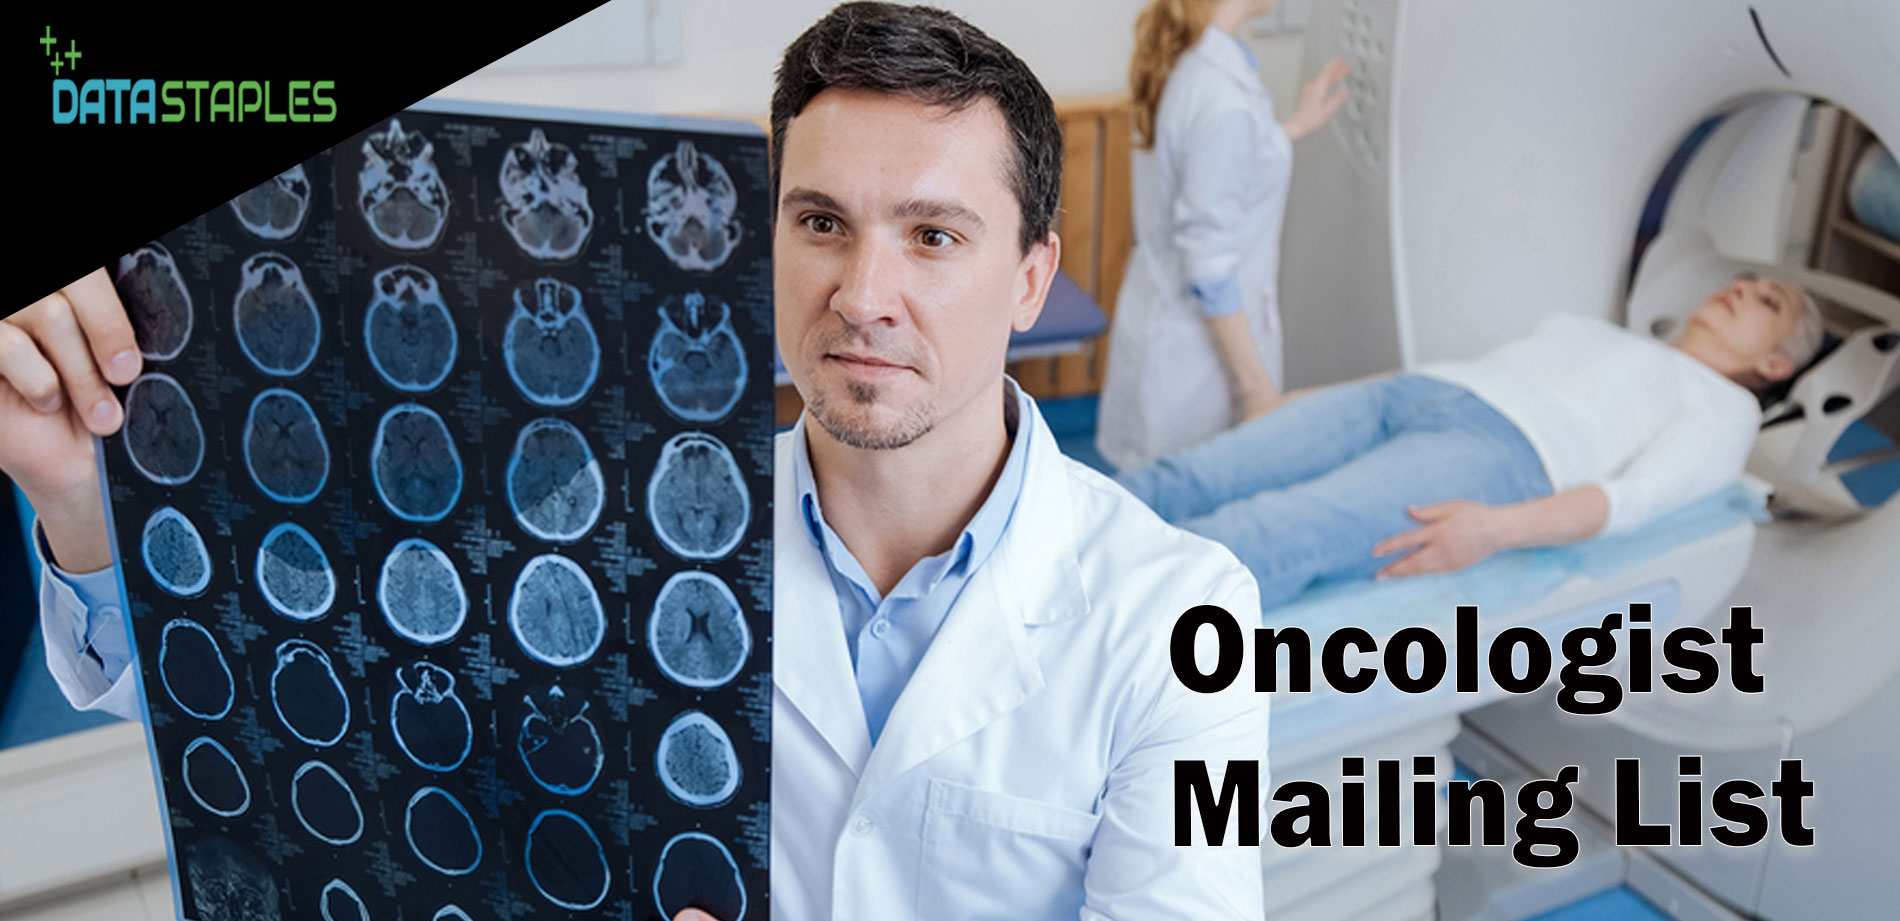 Oncologists Mailing List | DataStaples